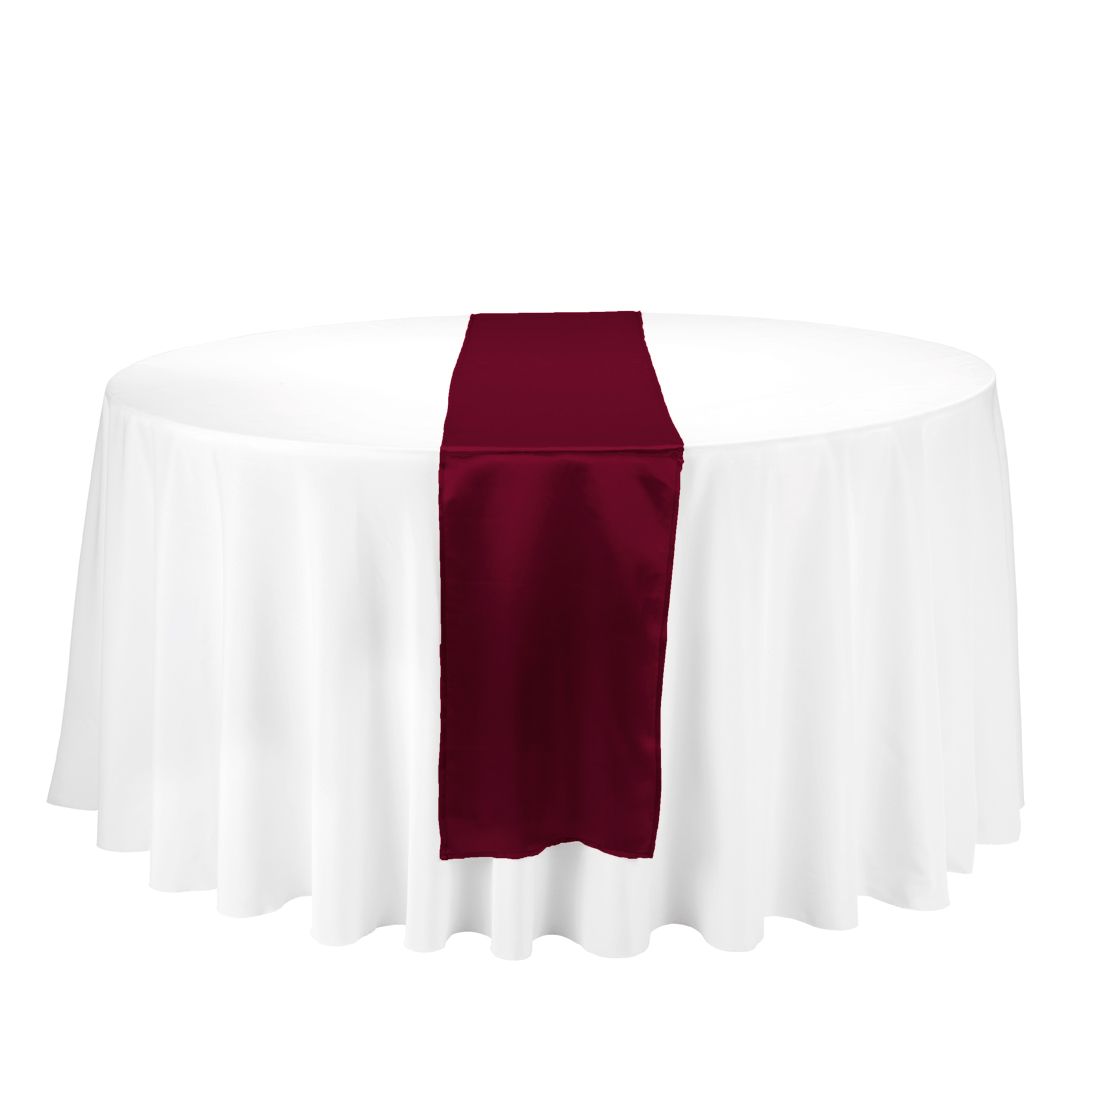 Burgundy Satin Table Runner